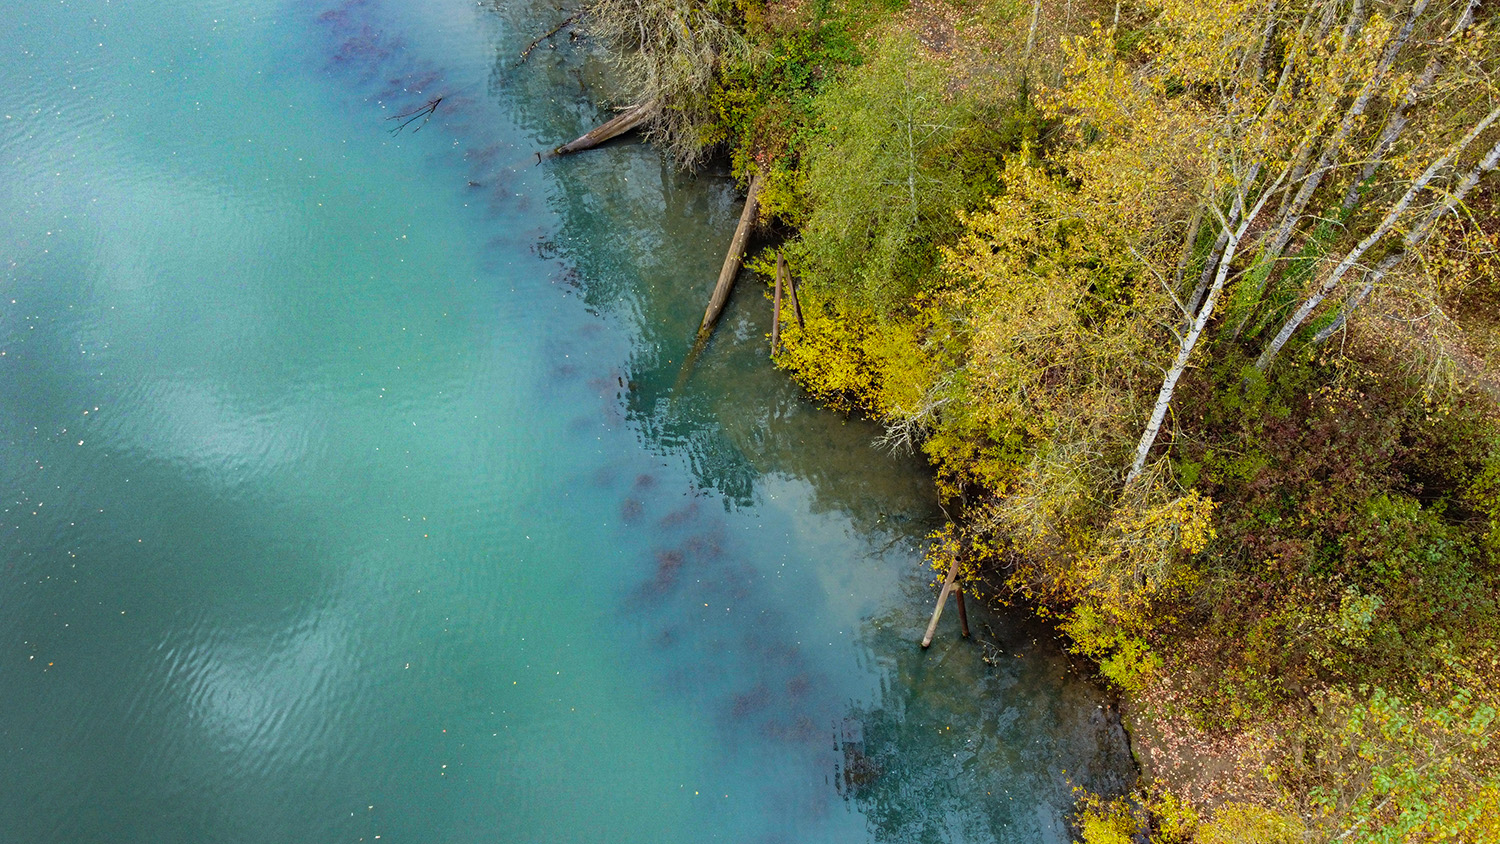 Willamette River from above - Photo by Ron Miller